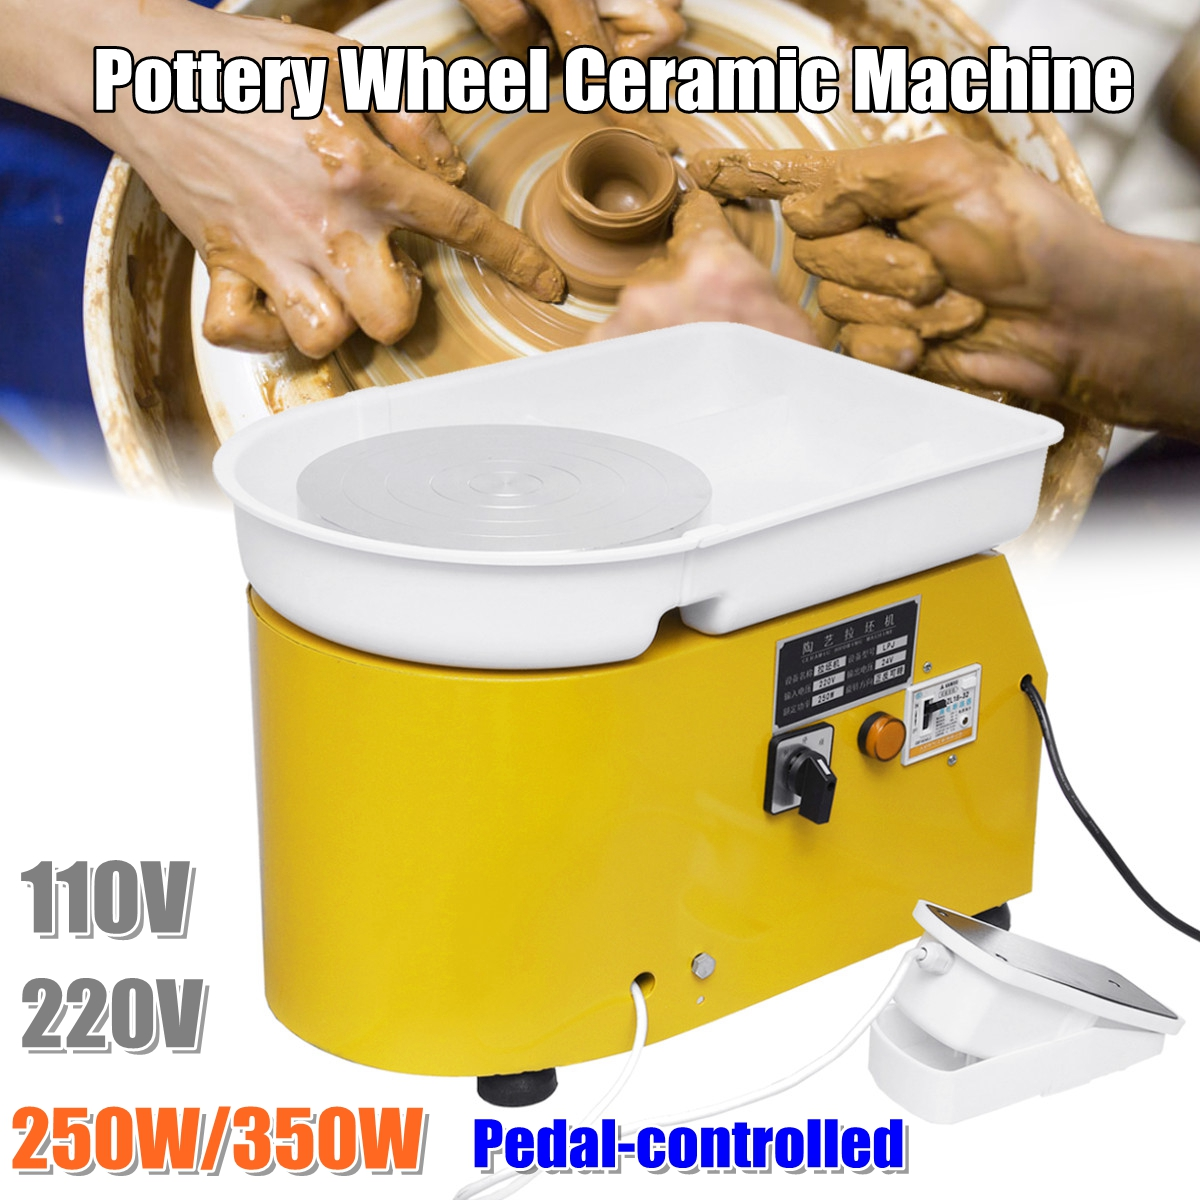 Turntable 250W/350W Electric Tours Wheel Pottery Machine Ceramic Clay Potter Art For Ceramic Work Ceramics 110V/220V